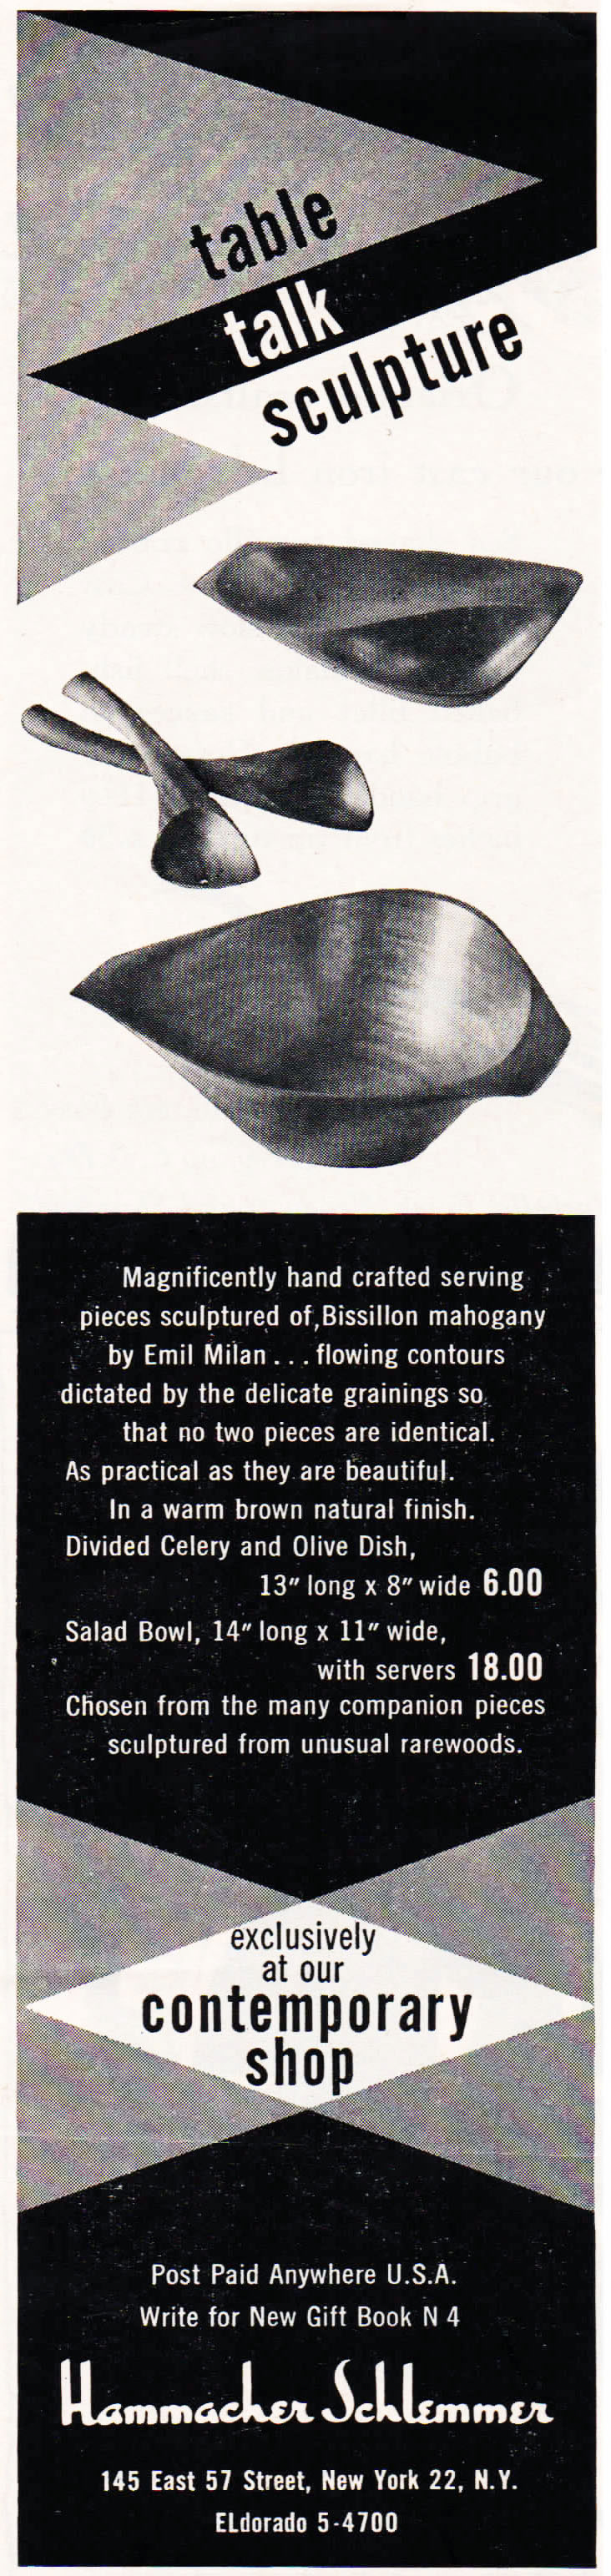 """A 1954 Hammacher Schlemmer ad for their """"Table Talk"""" line of wood accessories, featuring handmade wares crafted by Emil Milan."""